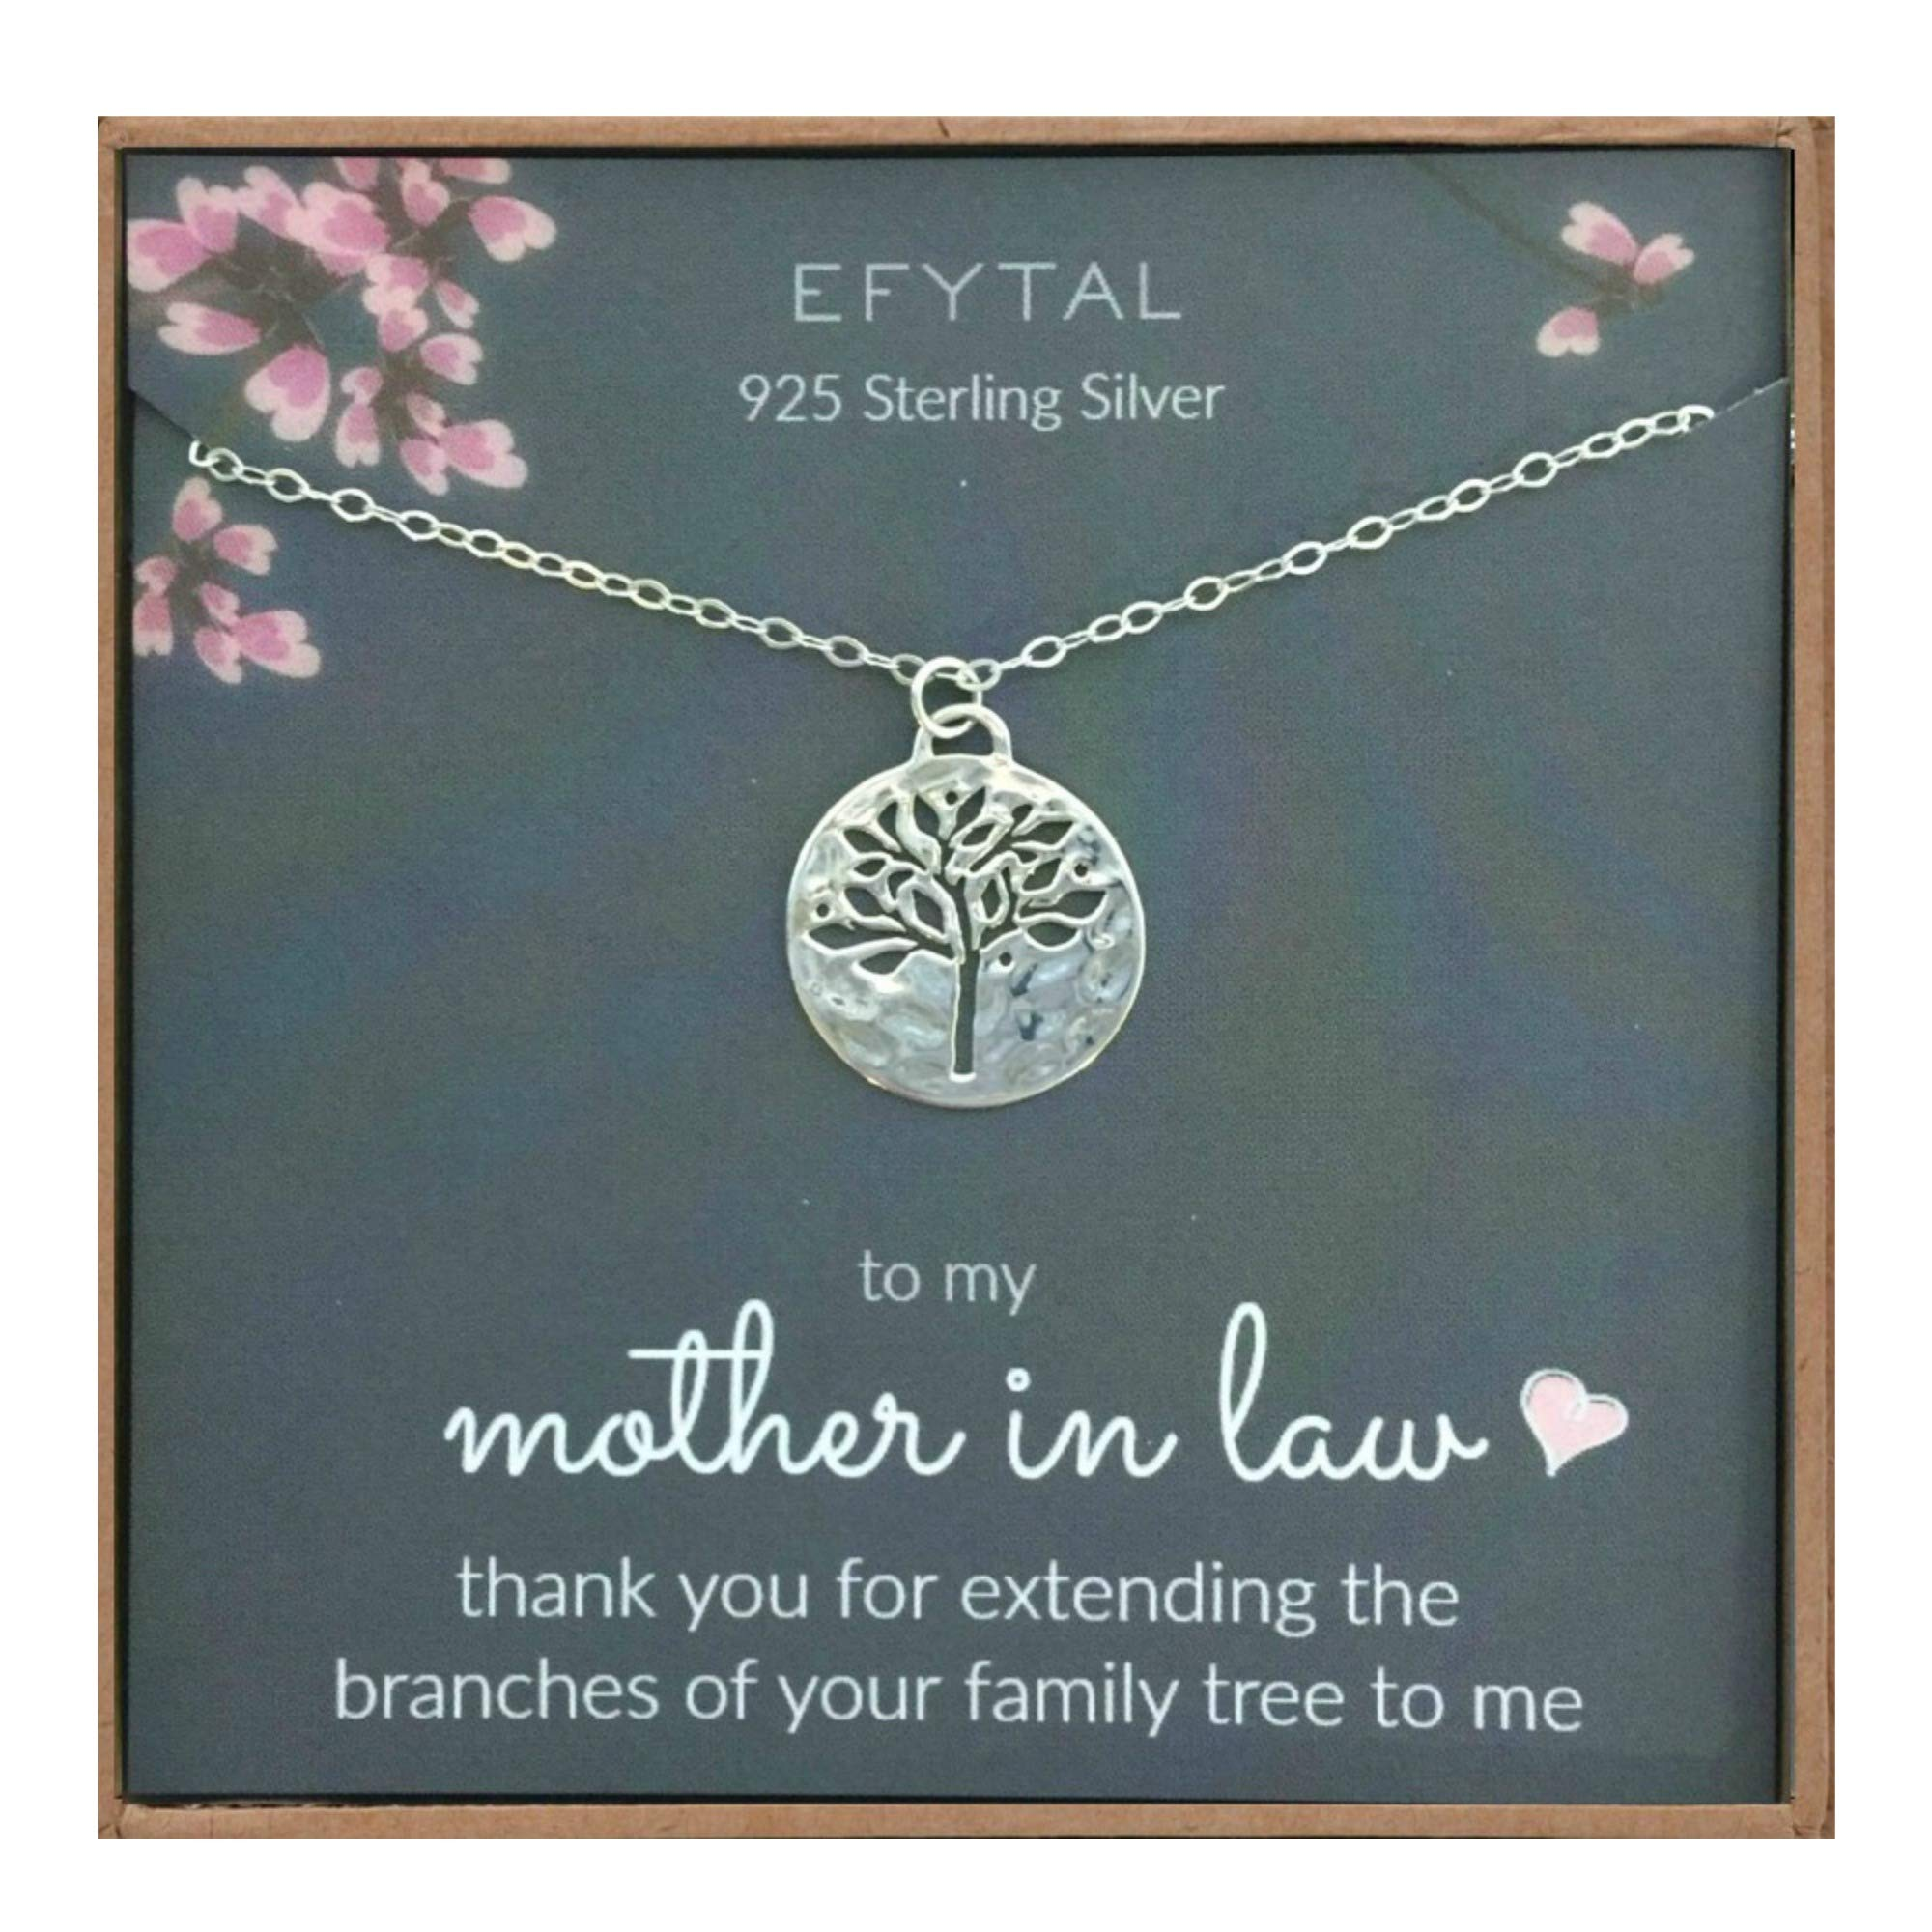 EFYTAL Mother in Law Gifts, Sterling Silver Tree of Life Necklace, Wedding Jewelry Gift from Bride or Groom by EFYTAL